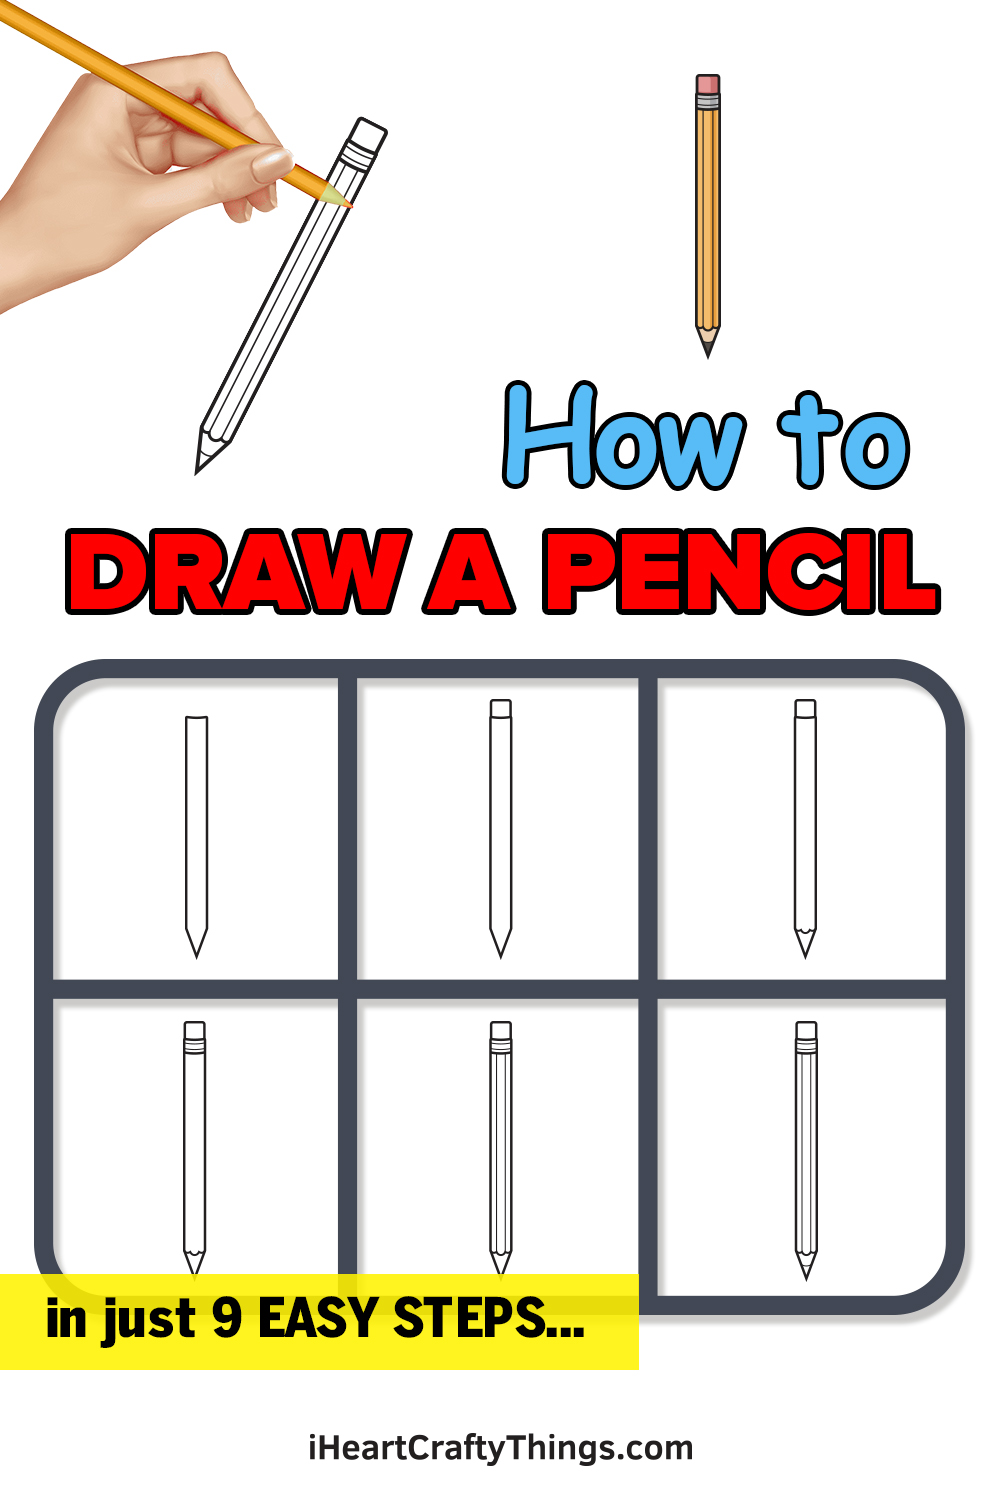 how to draw a pencil in 9 easy steps